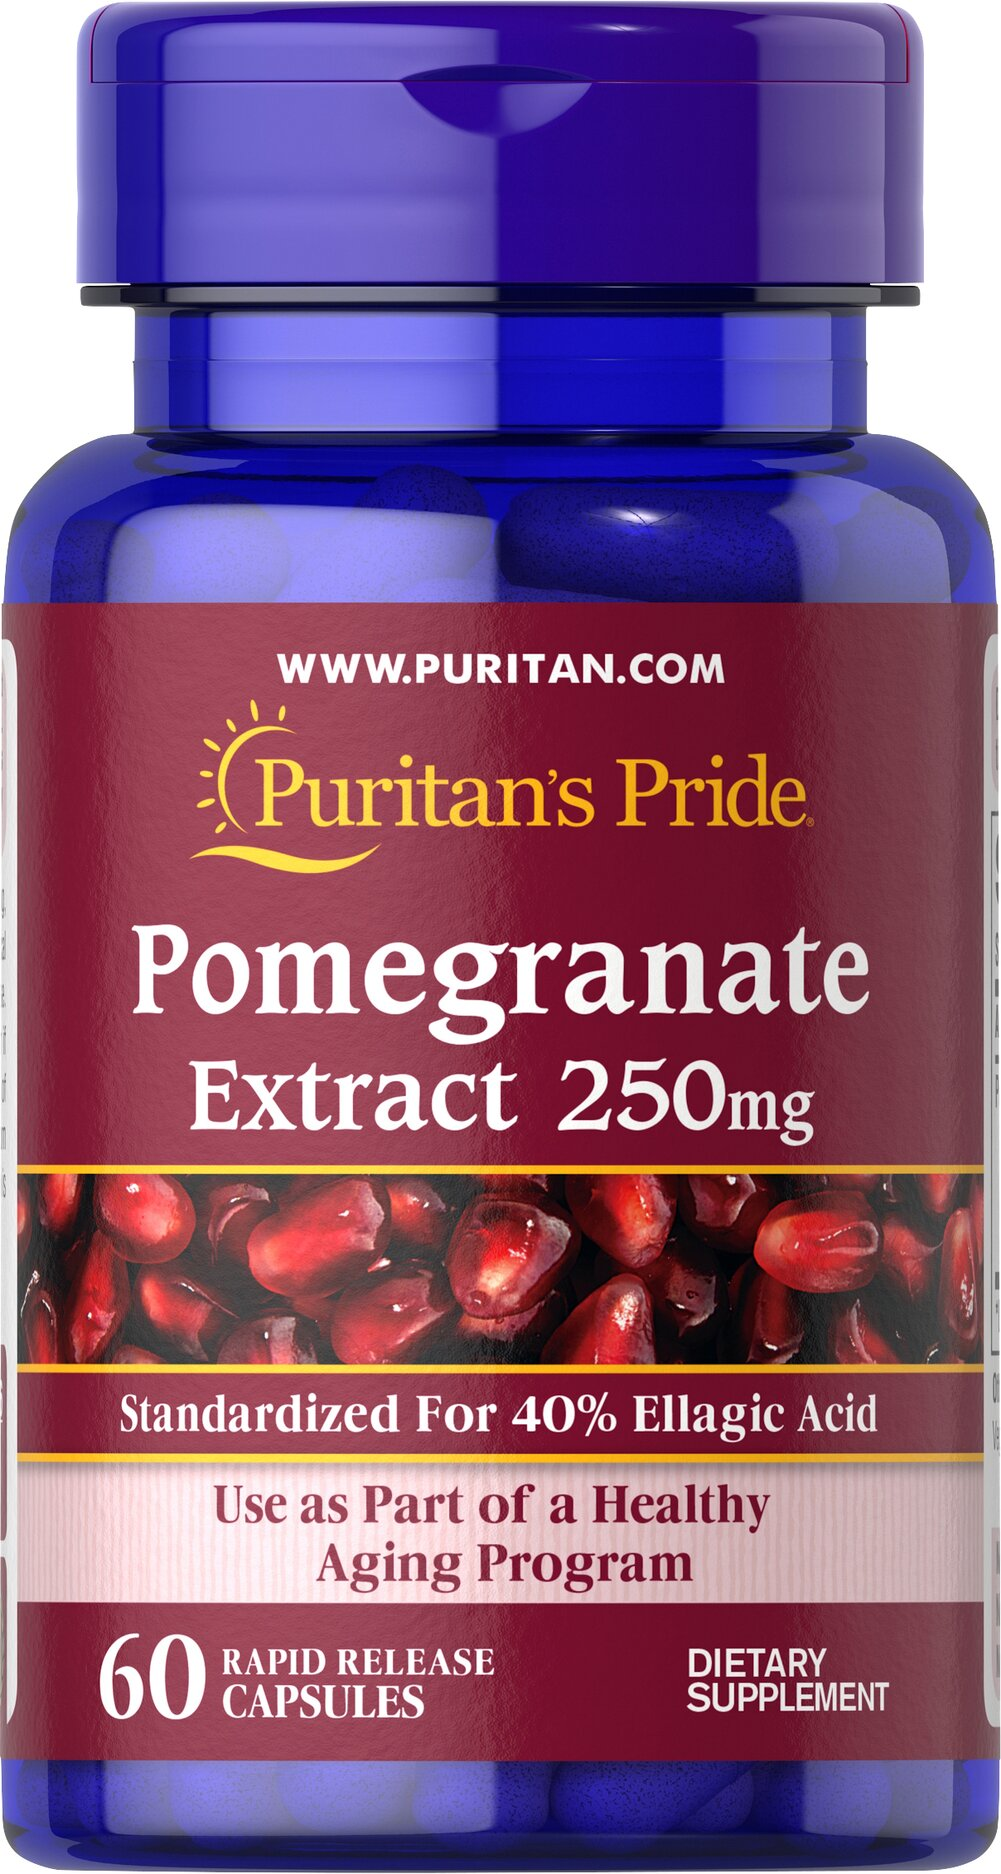 Pomegranate Extract 250 mg  60 Rapid Release Capsules 250 mg $13.99